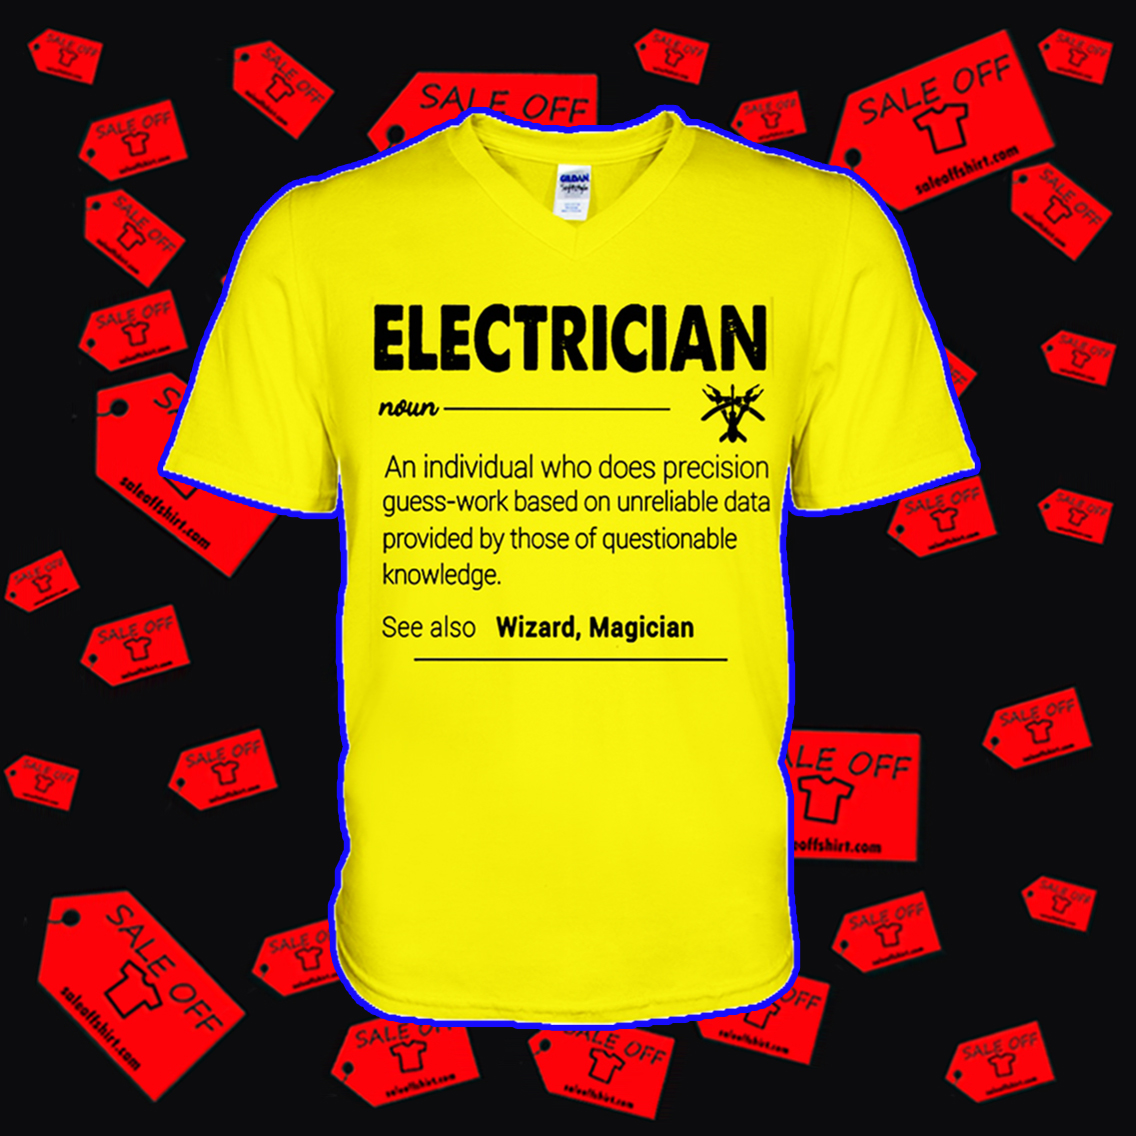 Electrician-an-individual-who-does-preci